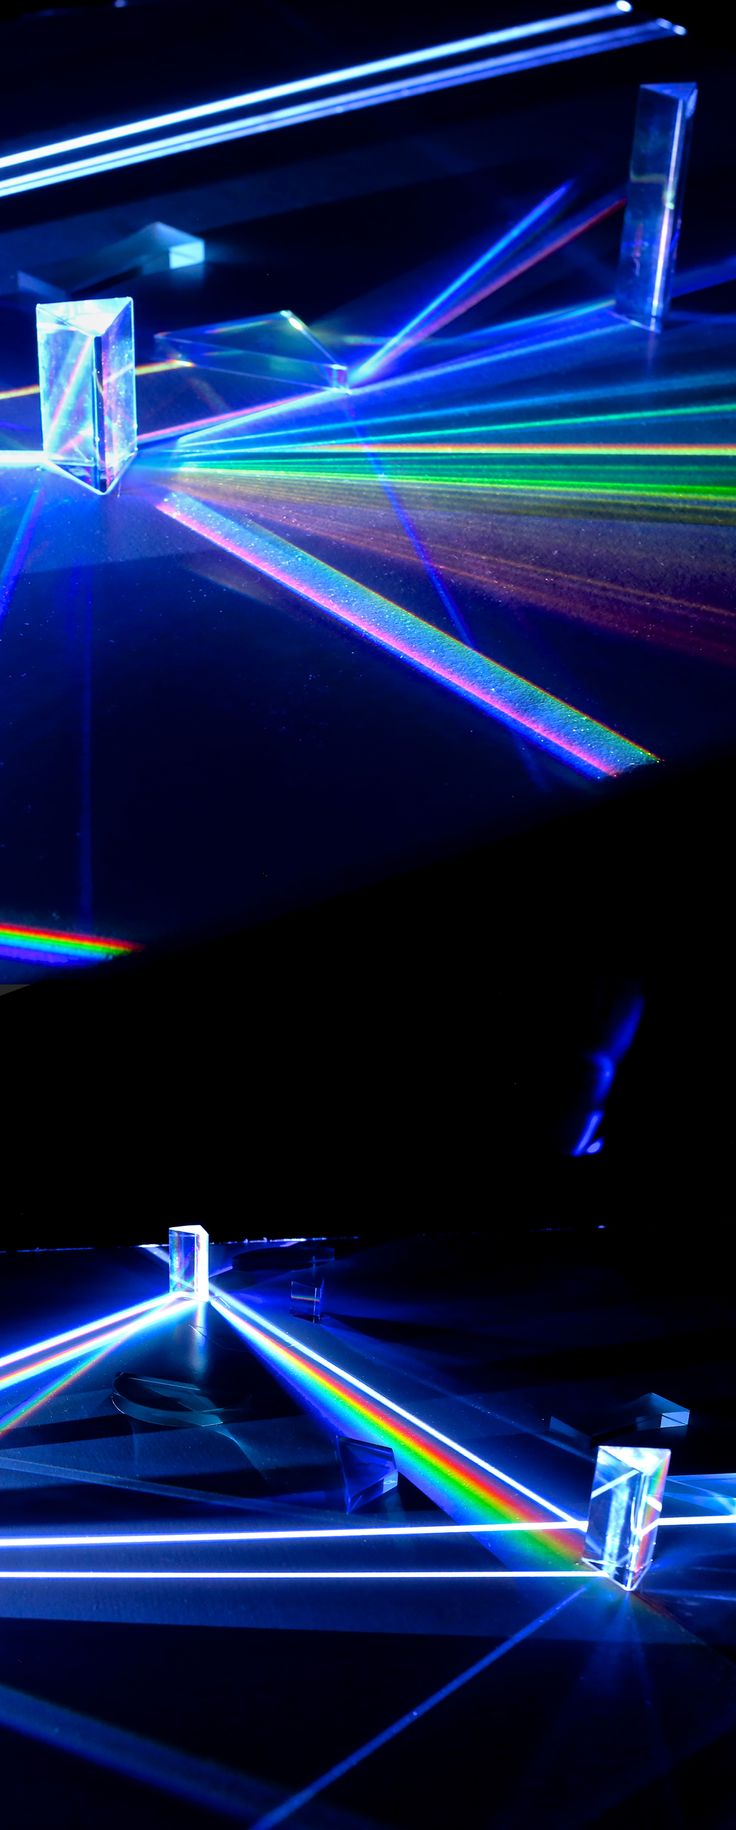 http://network.artcenter.edu/gallery/23740099/cornfields-prism-light-installation